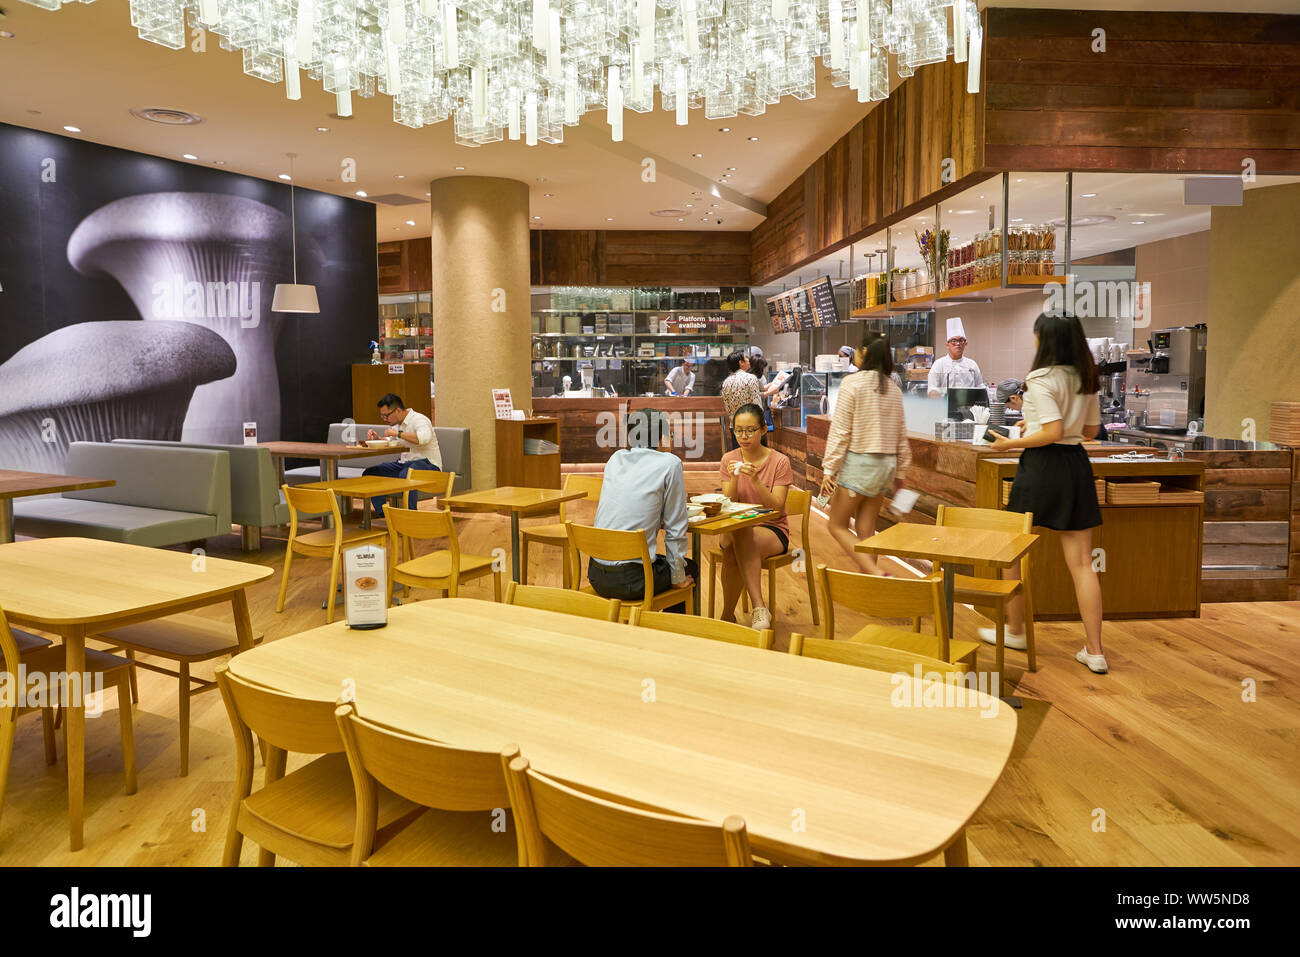 Singapore Circa April 2019 Interior Shot Of Cafe Meal Muji In Jewel Changi Airport Muji Is A Japanese Retail Company Which Sells A Wide Variety Stock Photo Alamy